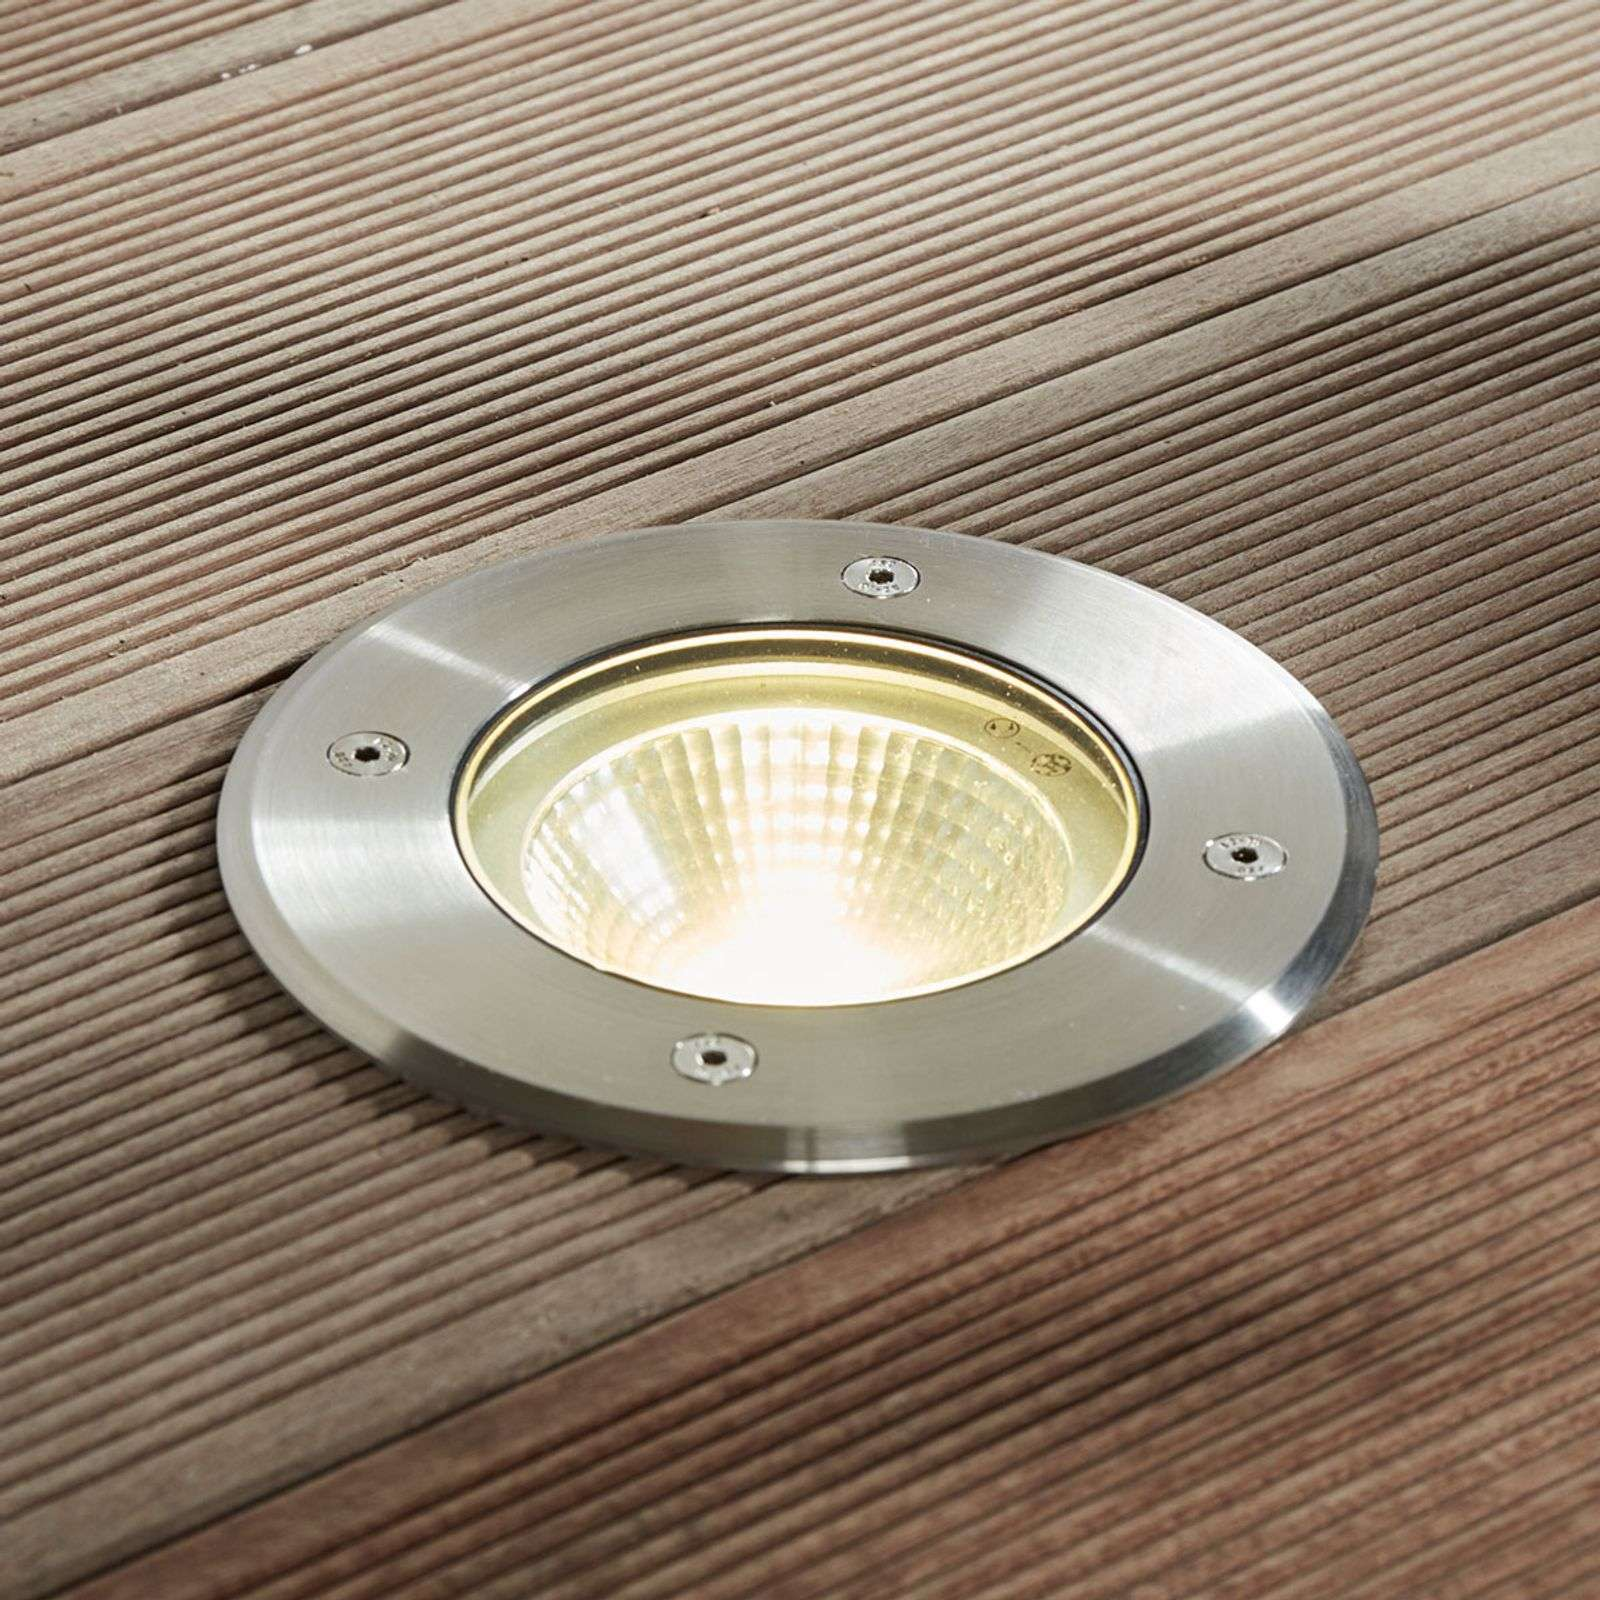 Faretto da incasso da terra LED Sanna IP67 tondo